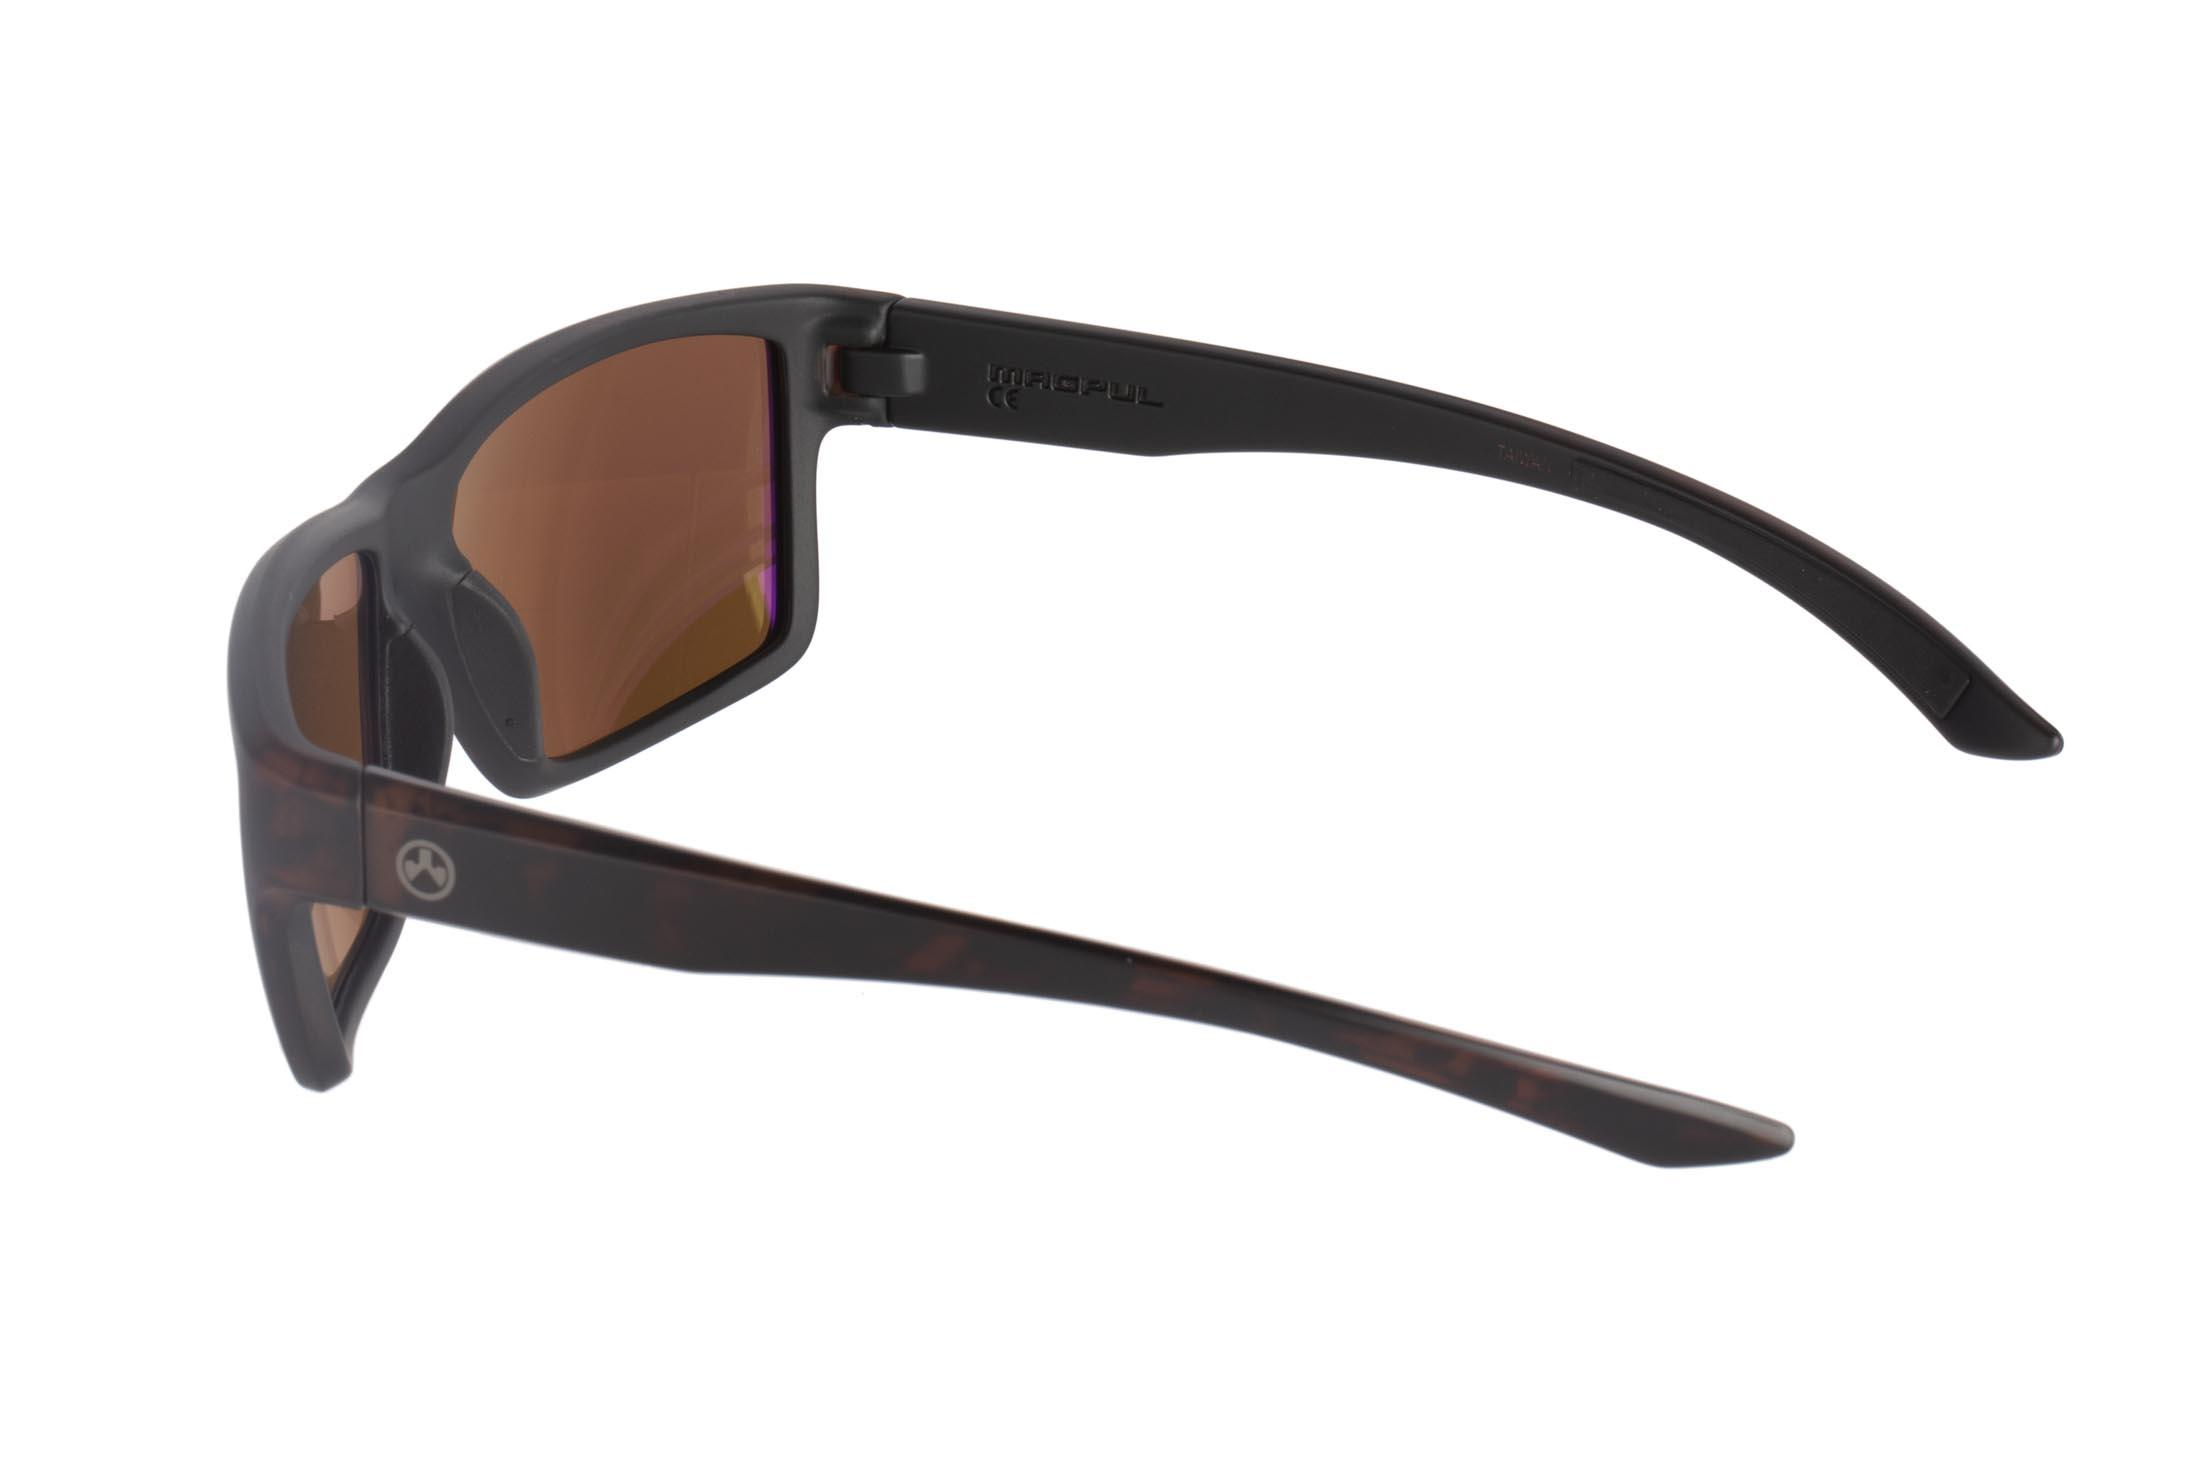 Magpul Explorer tortoise frame eye protection with polarized bronze/blue lenses are designed to complement over-ear hearing protection